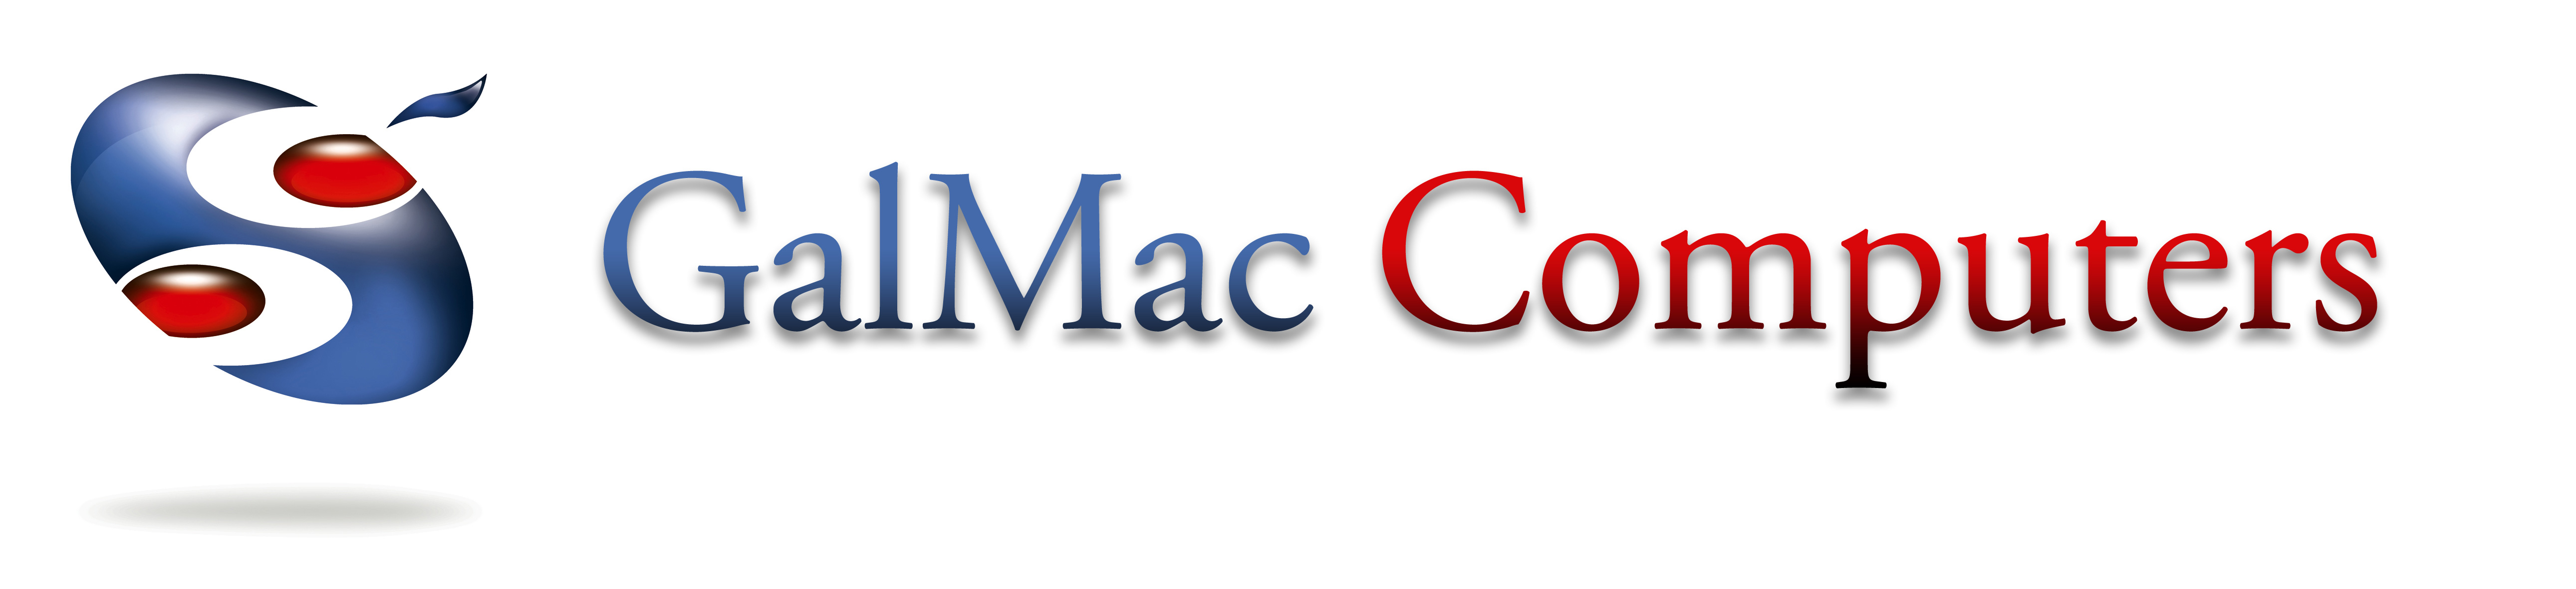 Galmac Computers Limited logo